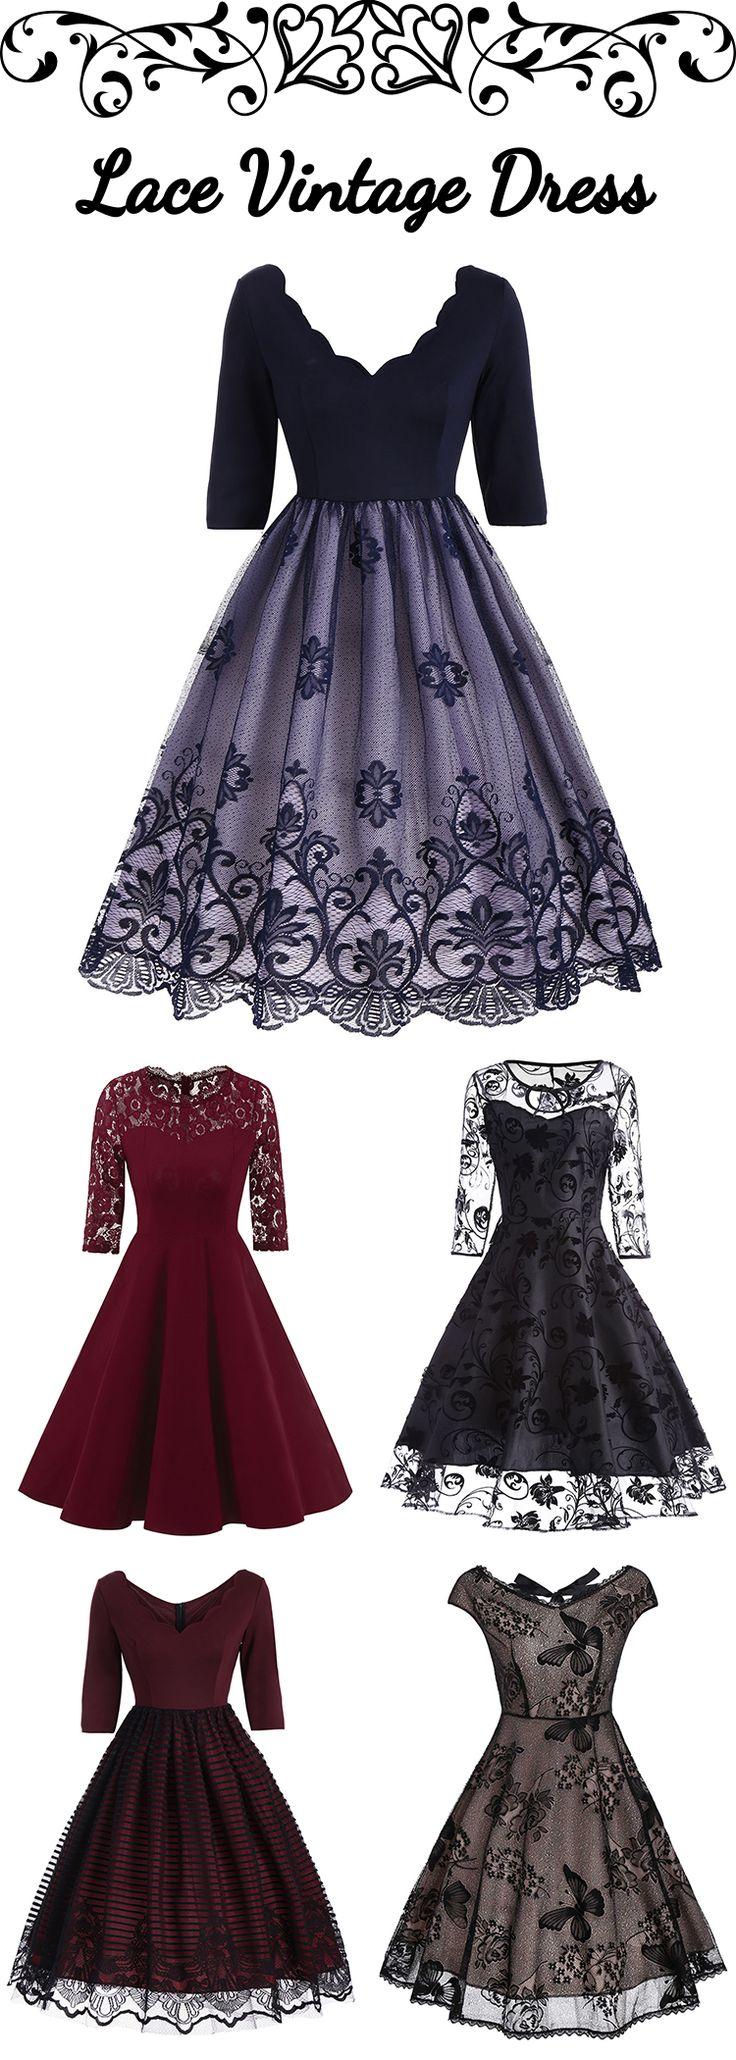 100+ Lace Vintage Dresses | From $2.99 | #bottomprice #vintage #Dress